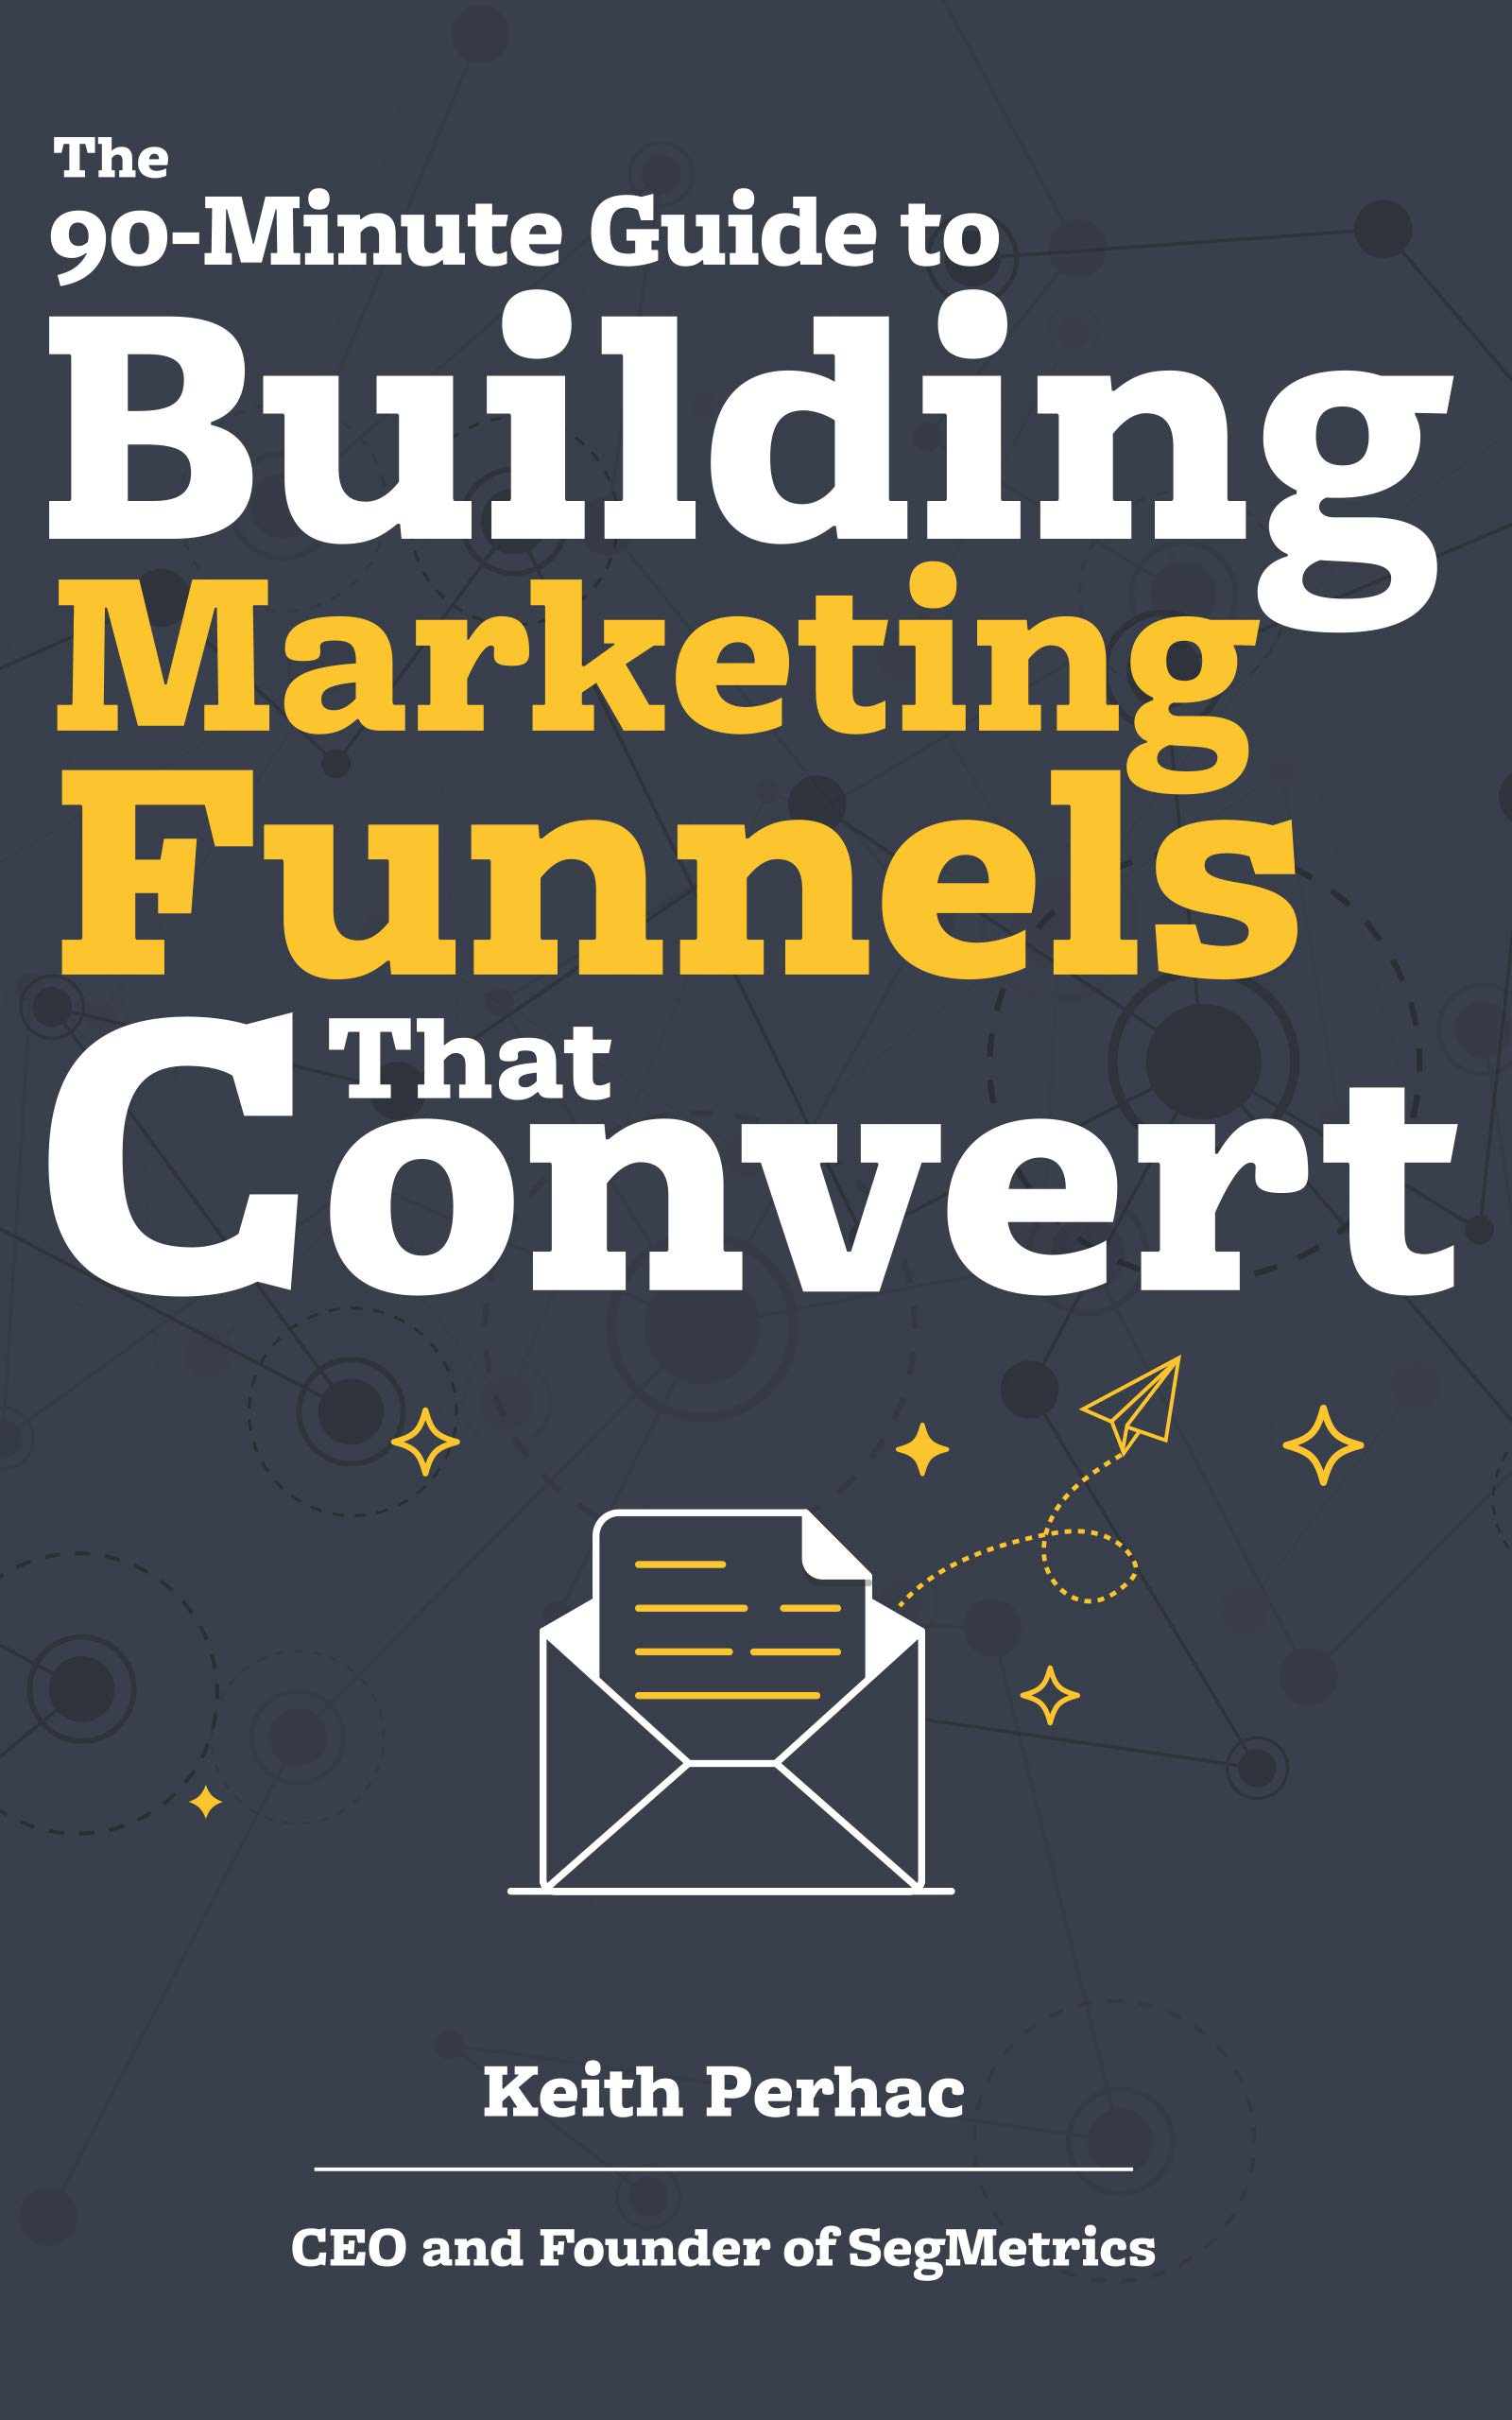 The 90-Minute Guide to Building Marketing Funnels That Convert (Data Beats Opinion Book 1)